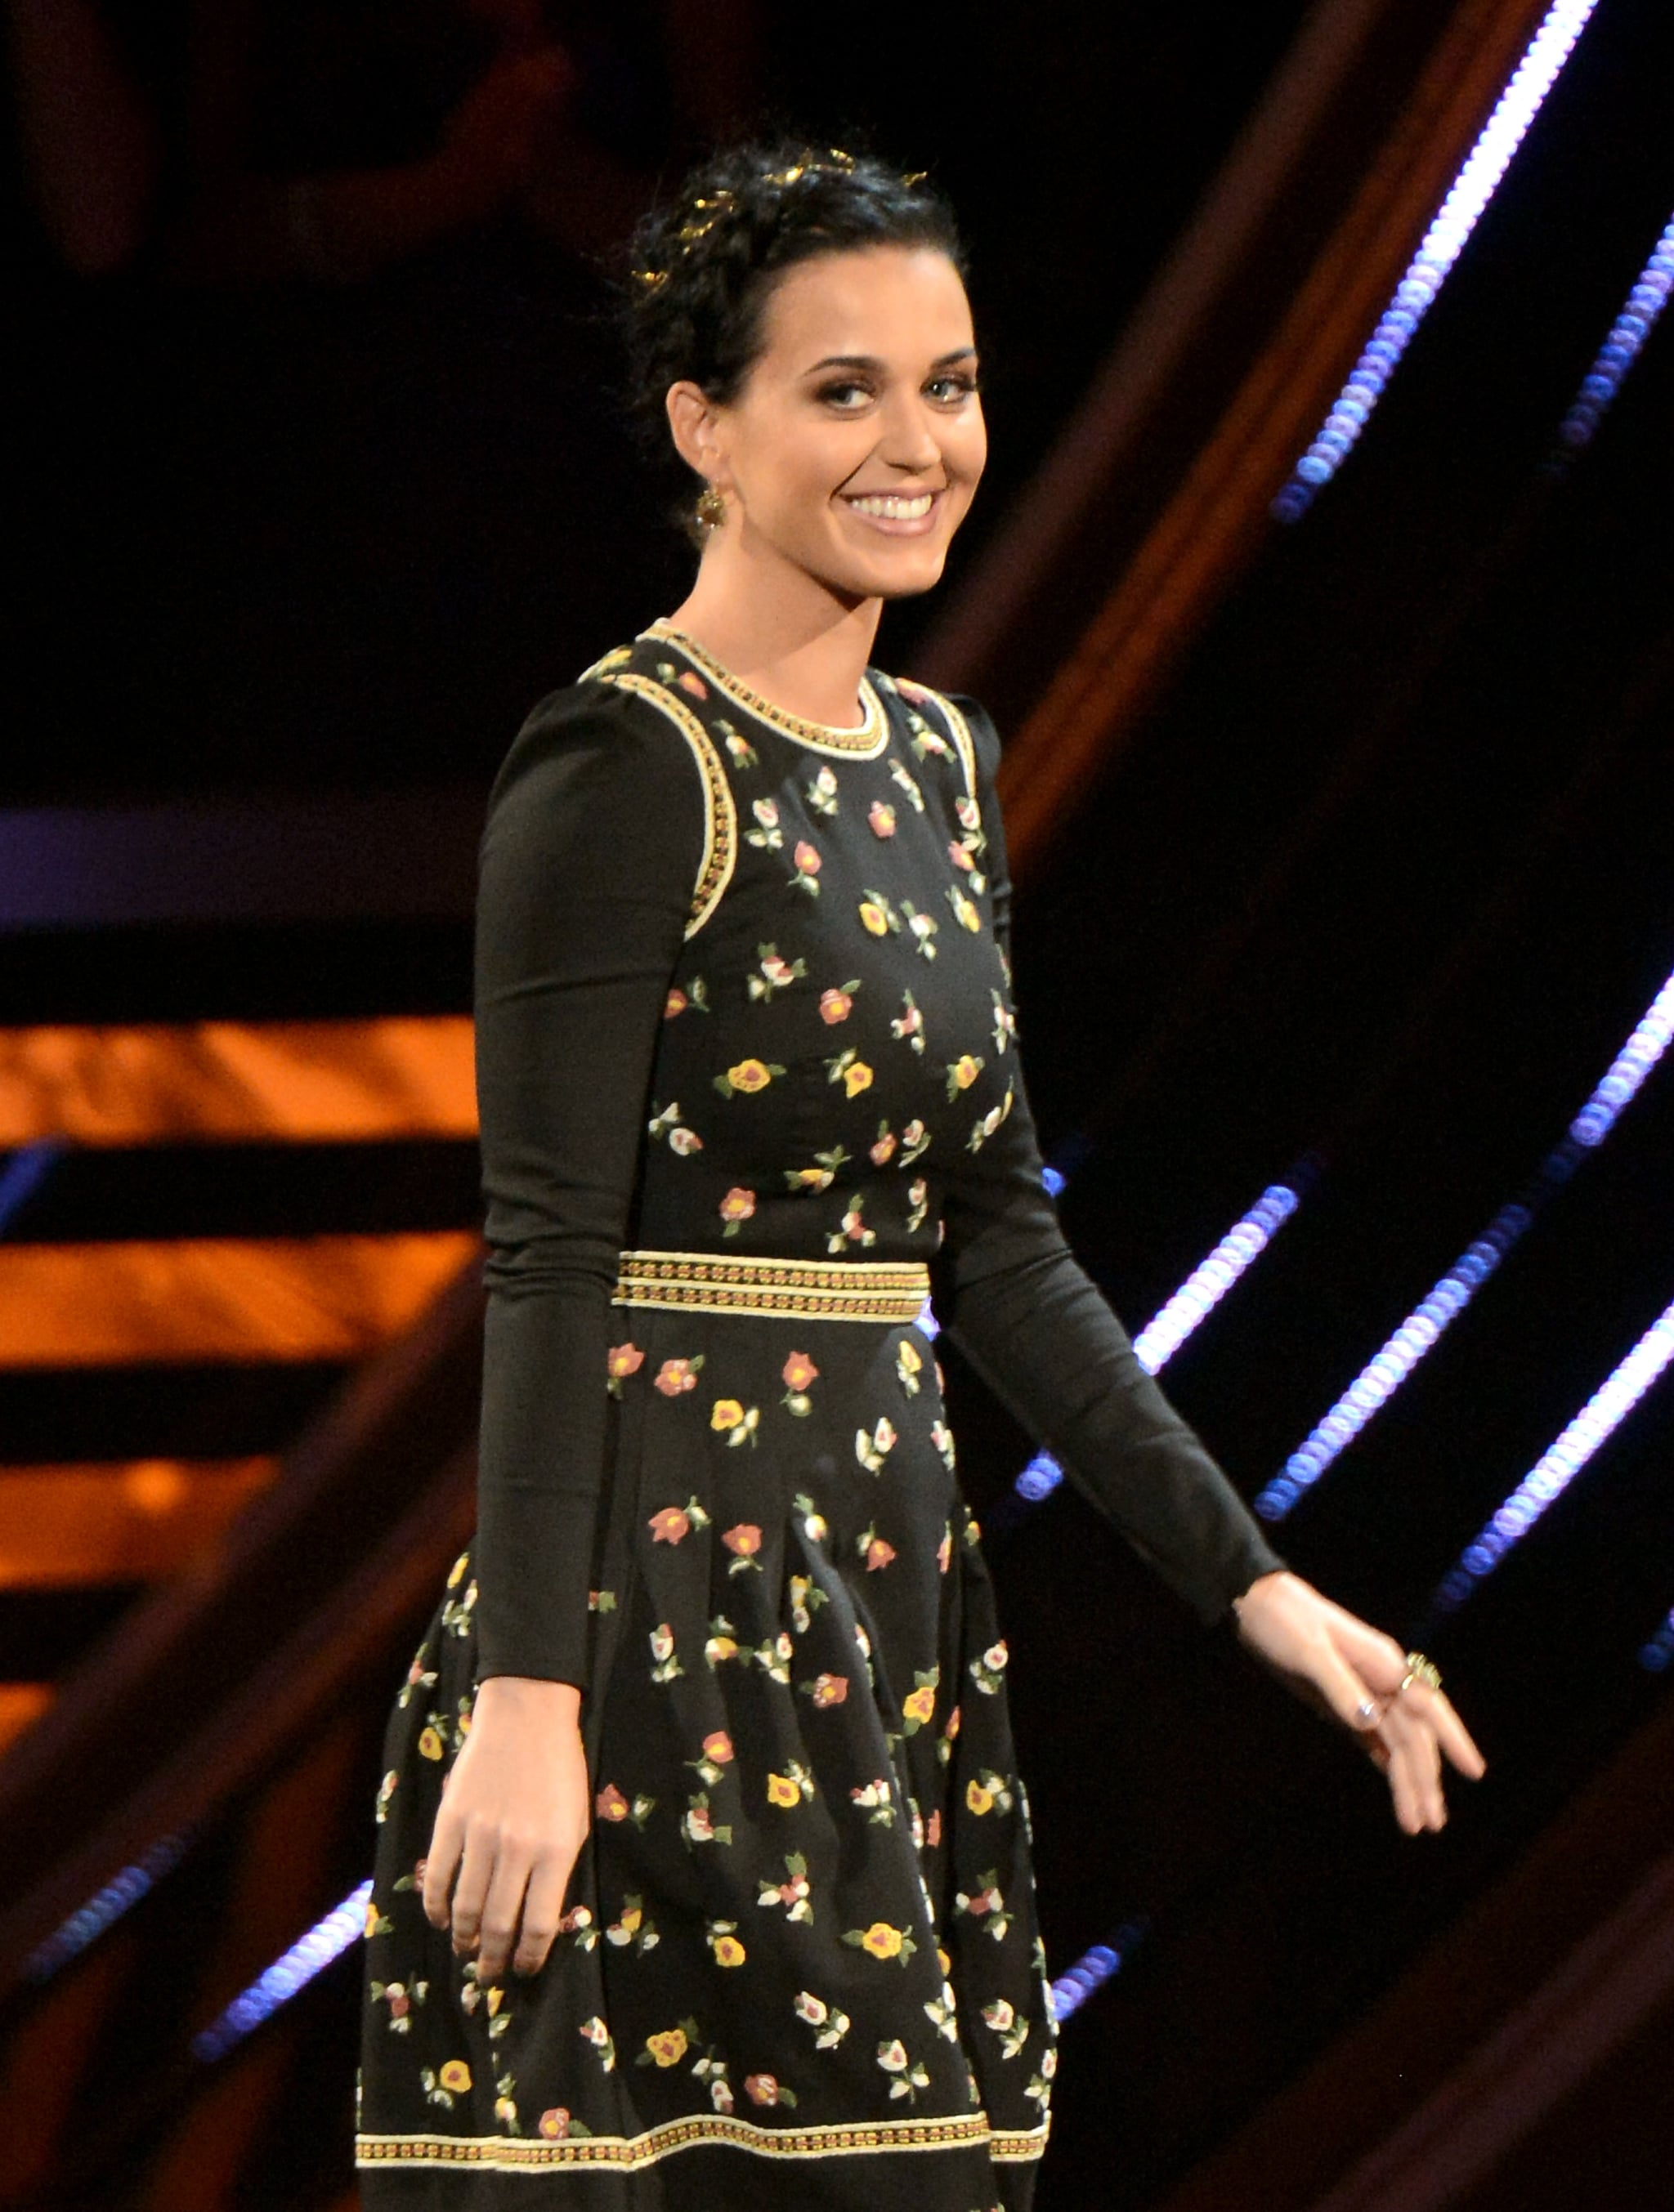 Jennifer and Hunger Games Win Big, Alicia Performs, and More Highlights From the 2013 PCAs